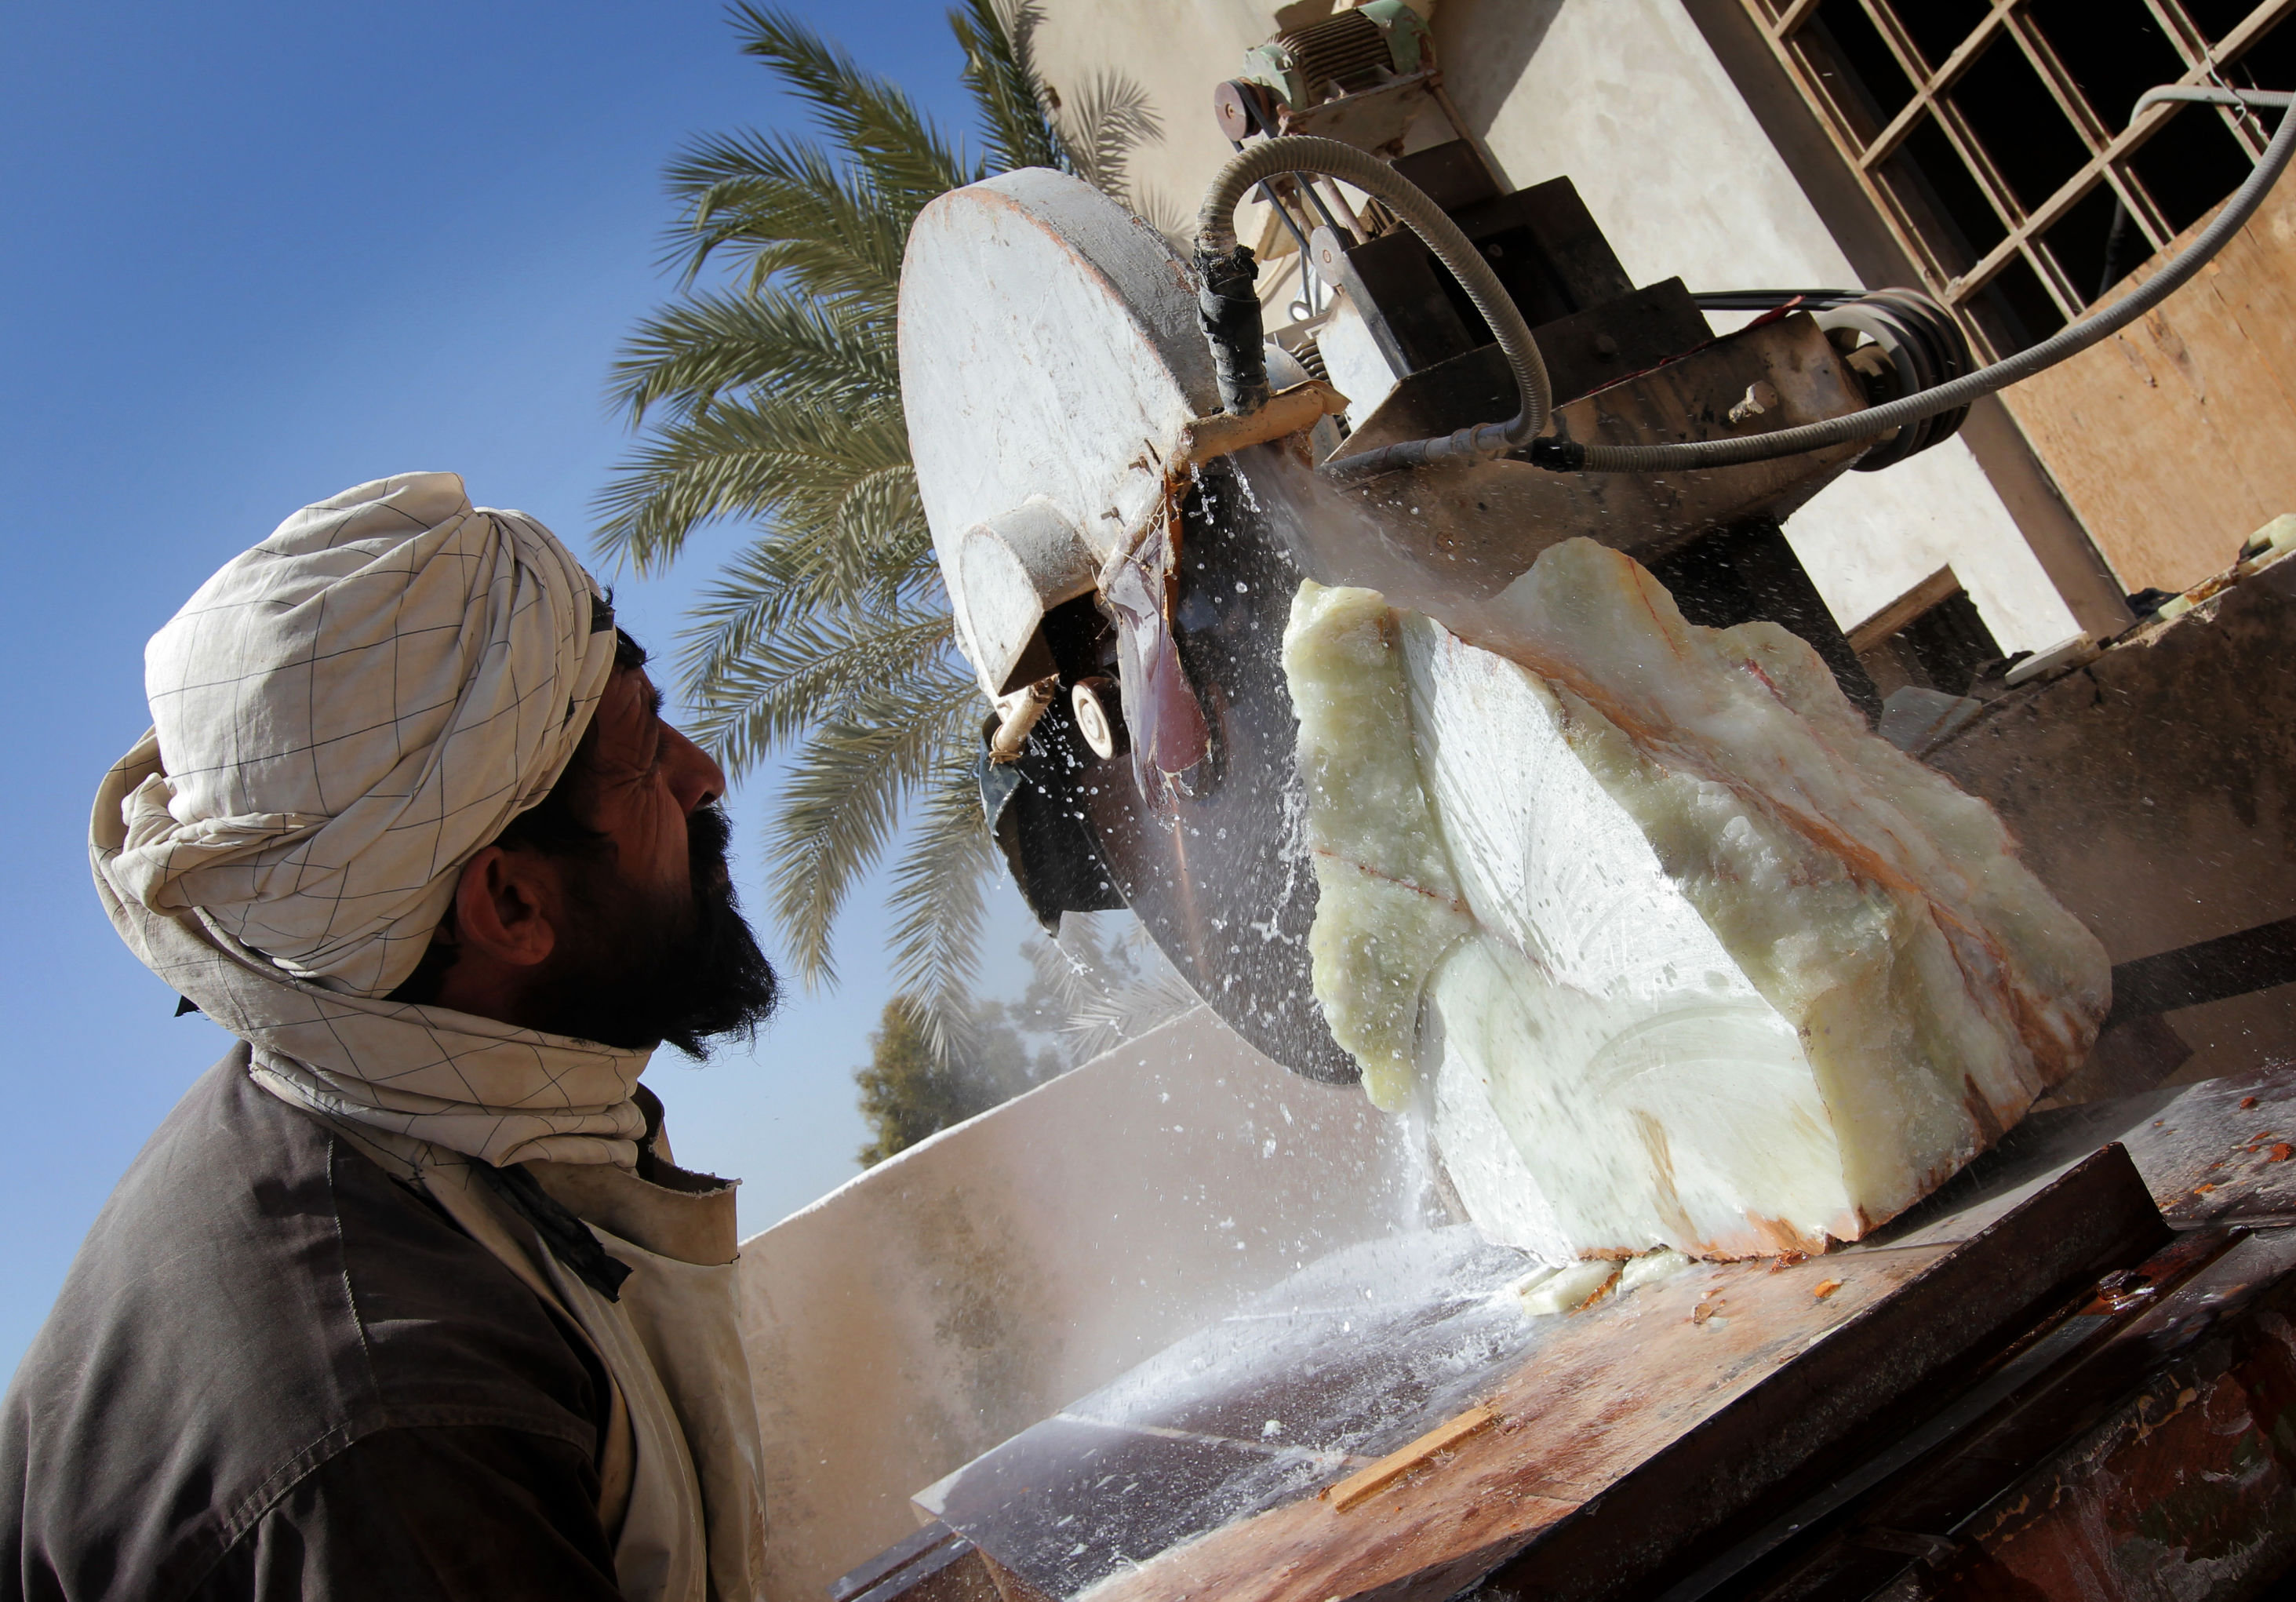 marble at a factory in Helmand province